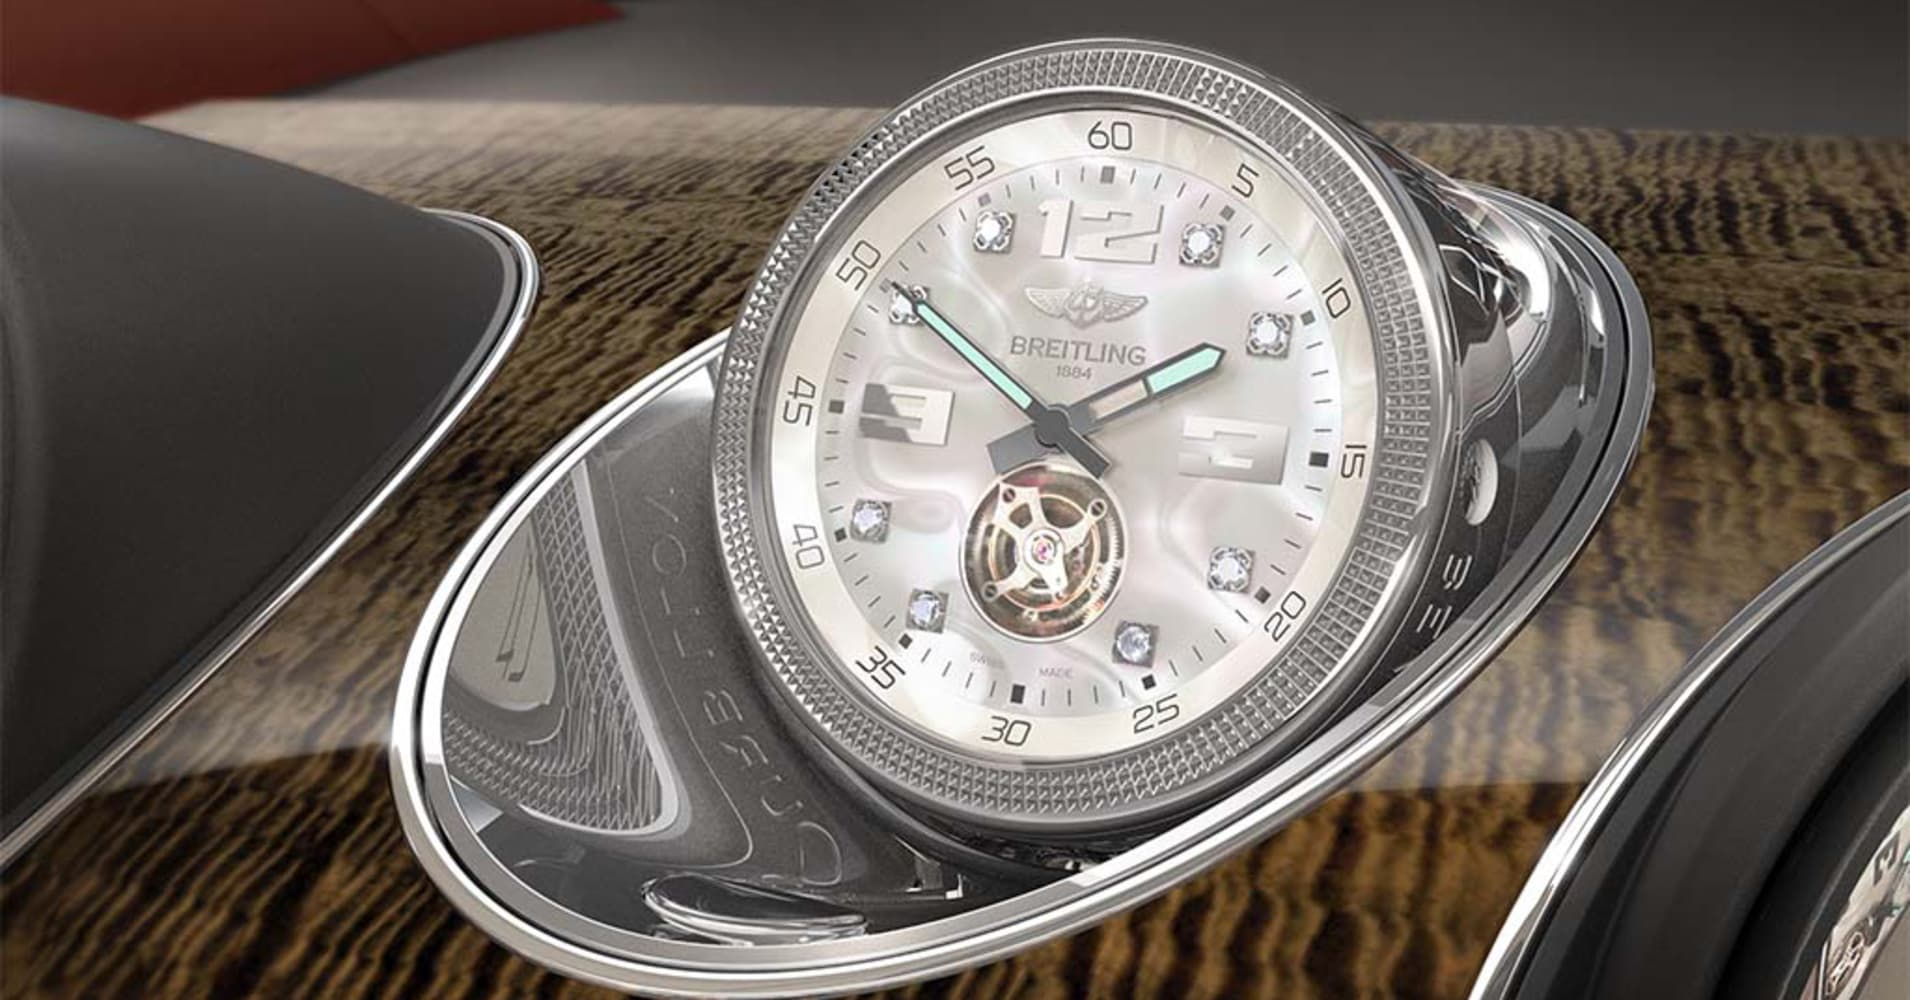 Bentley offering world's most expensive in-car clock